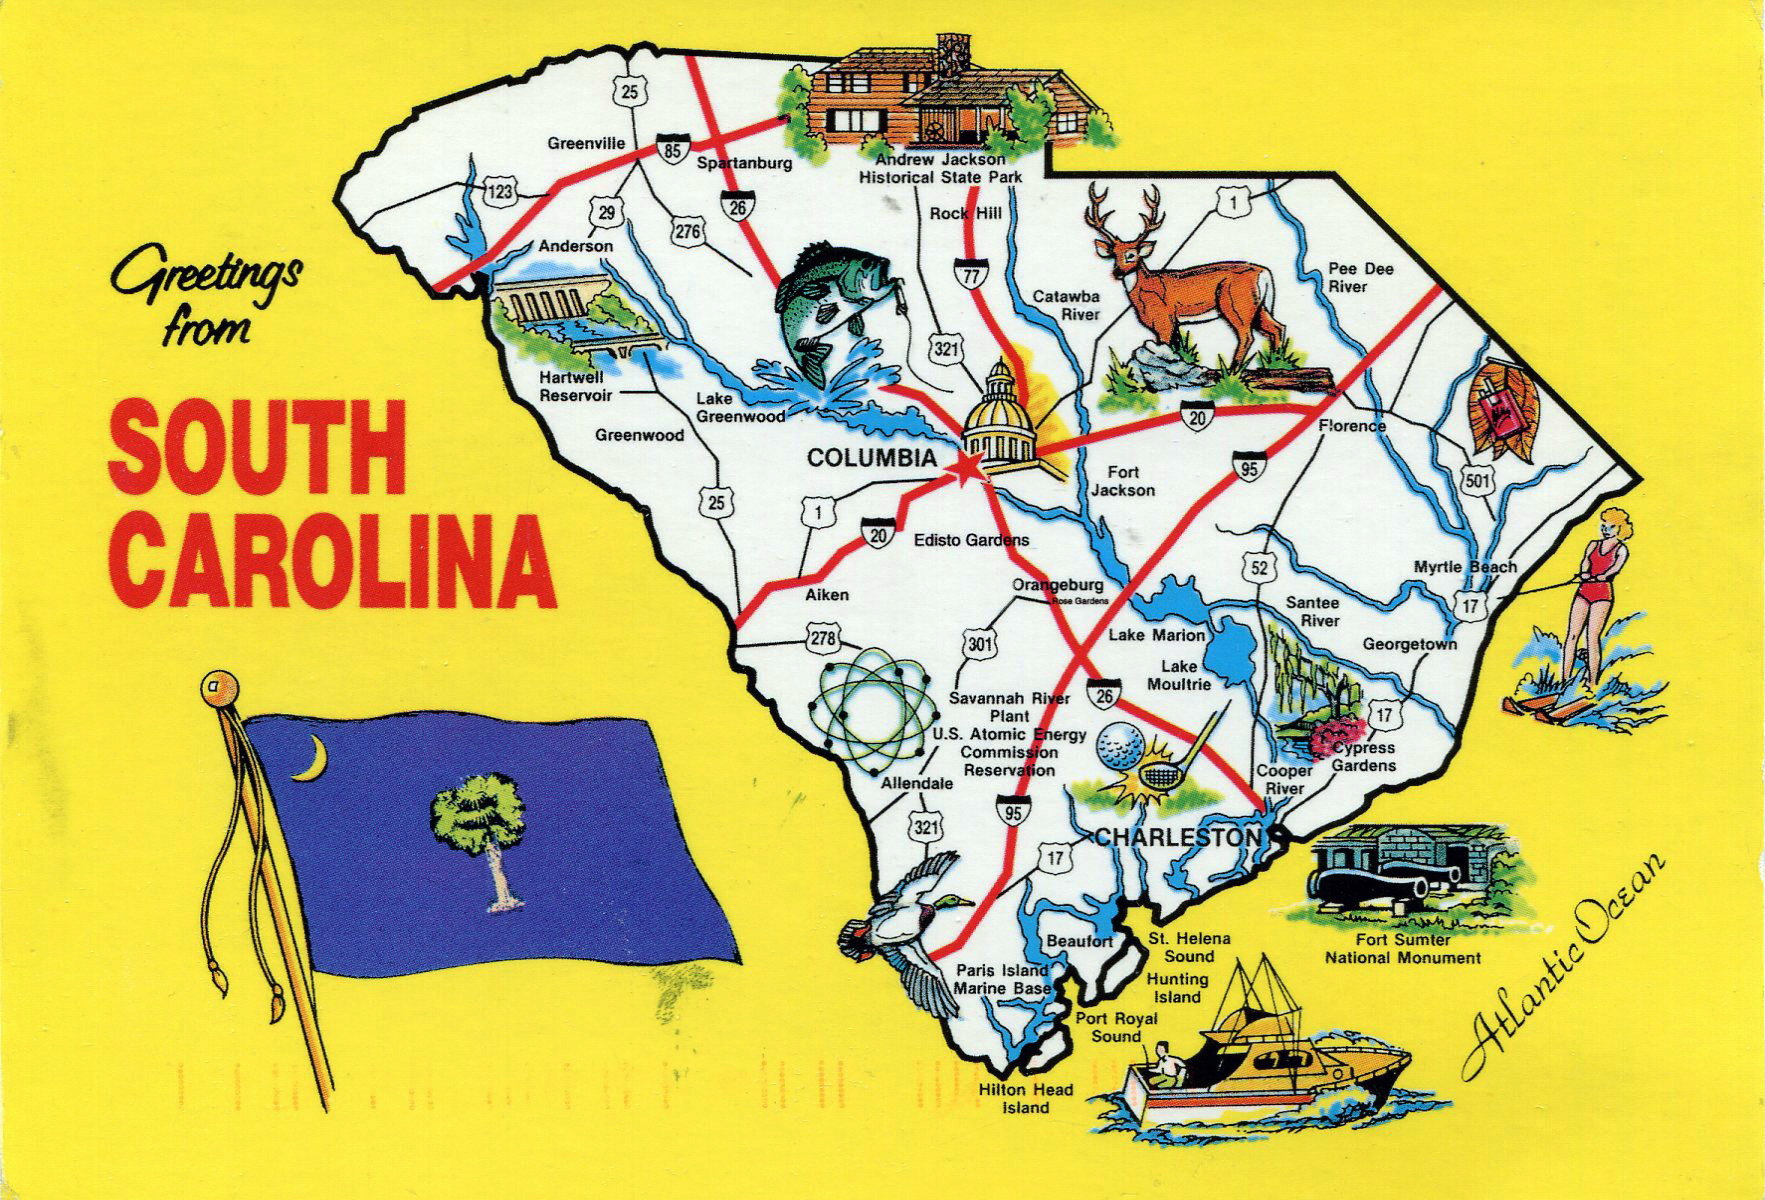 Large tourist illustrated map of the state of South Carolina South